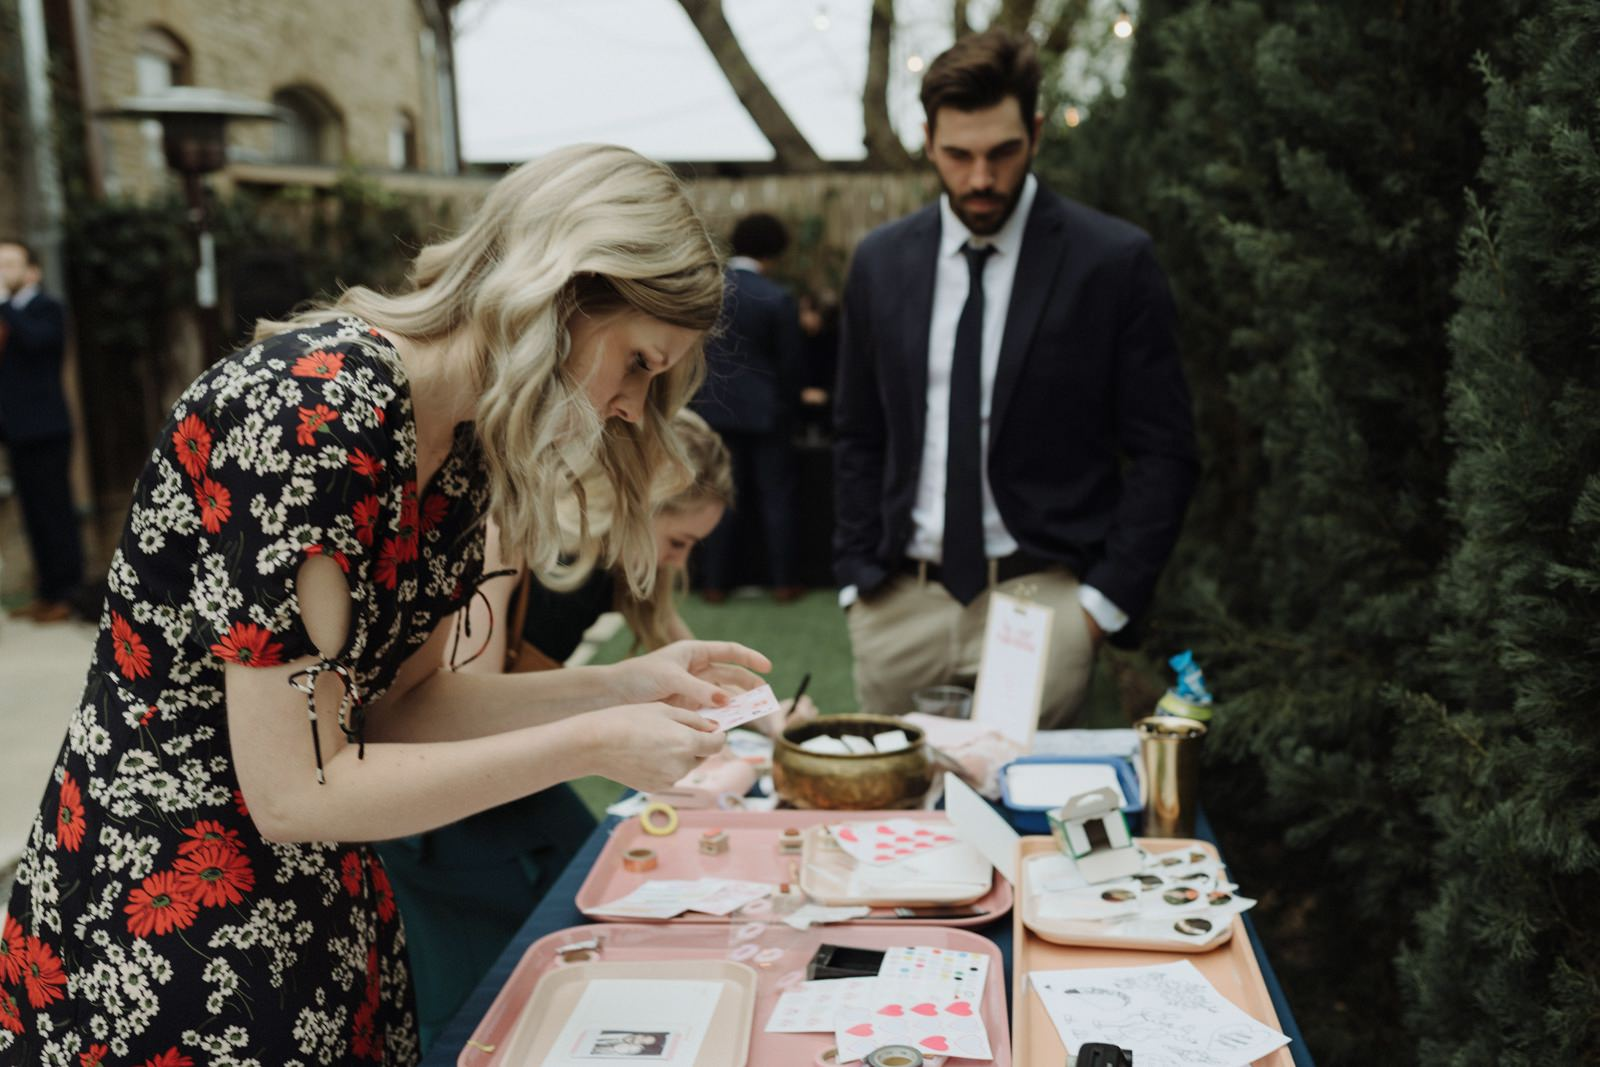 Crafting table for guests at an outdoor cocktail weddingreception